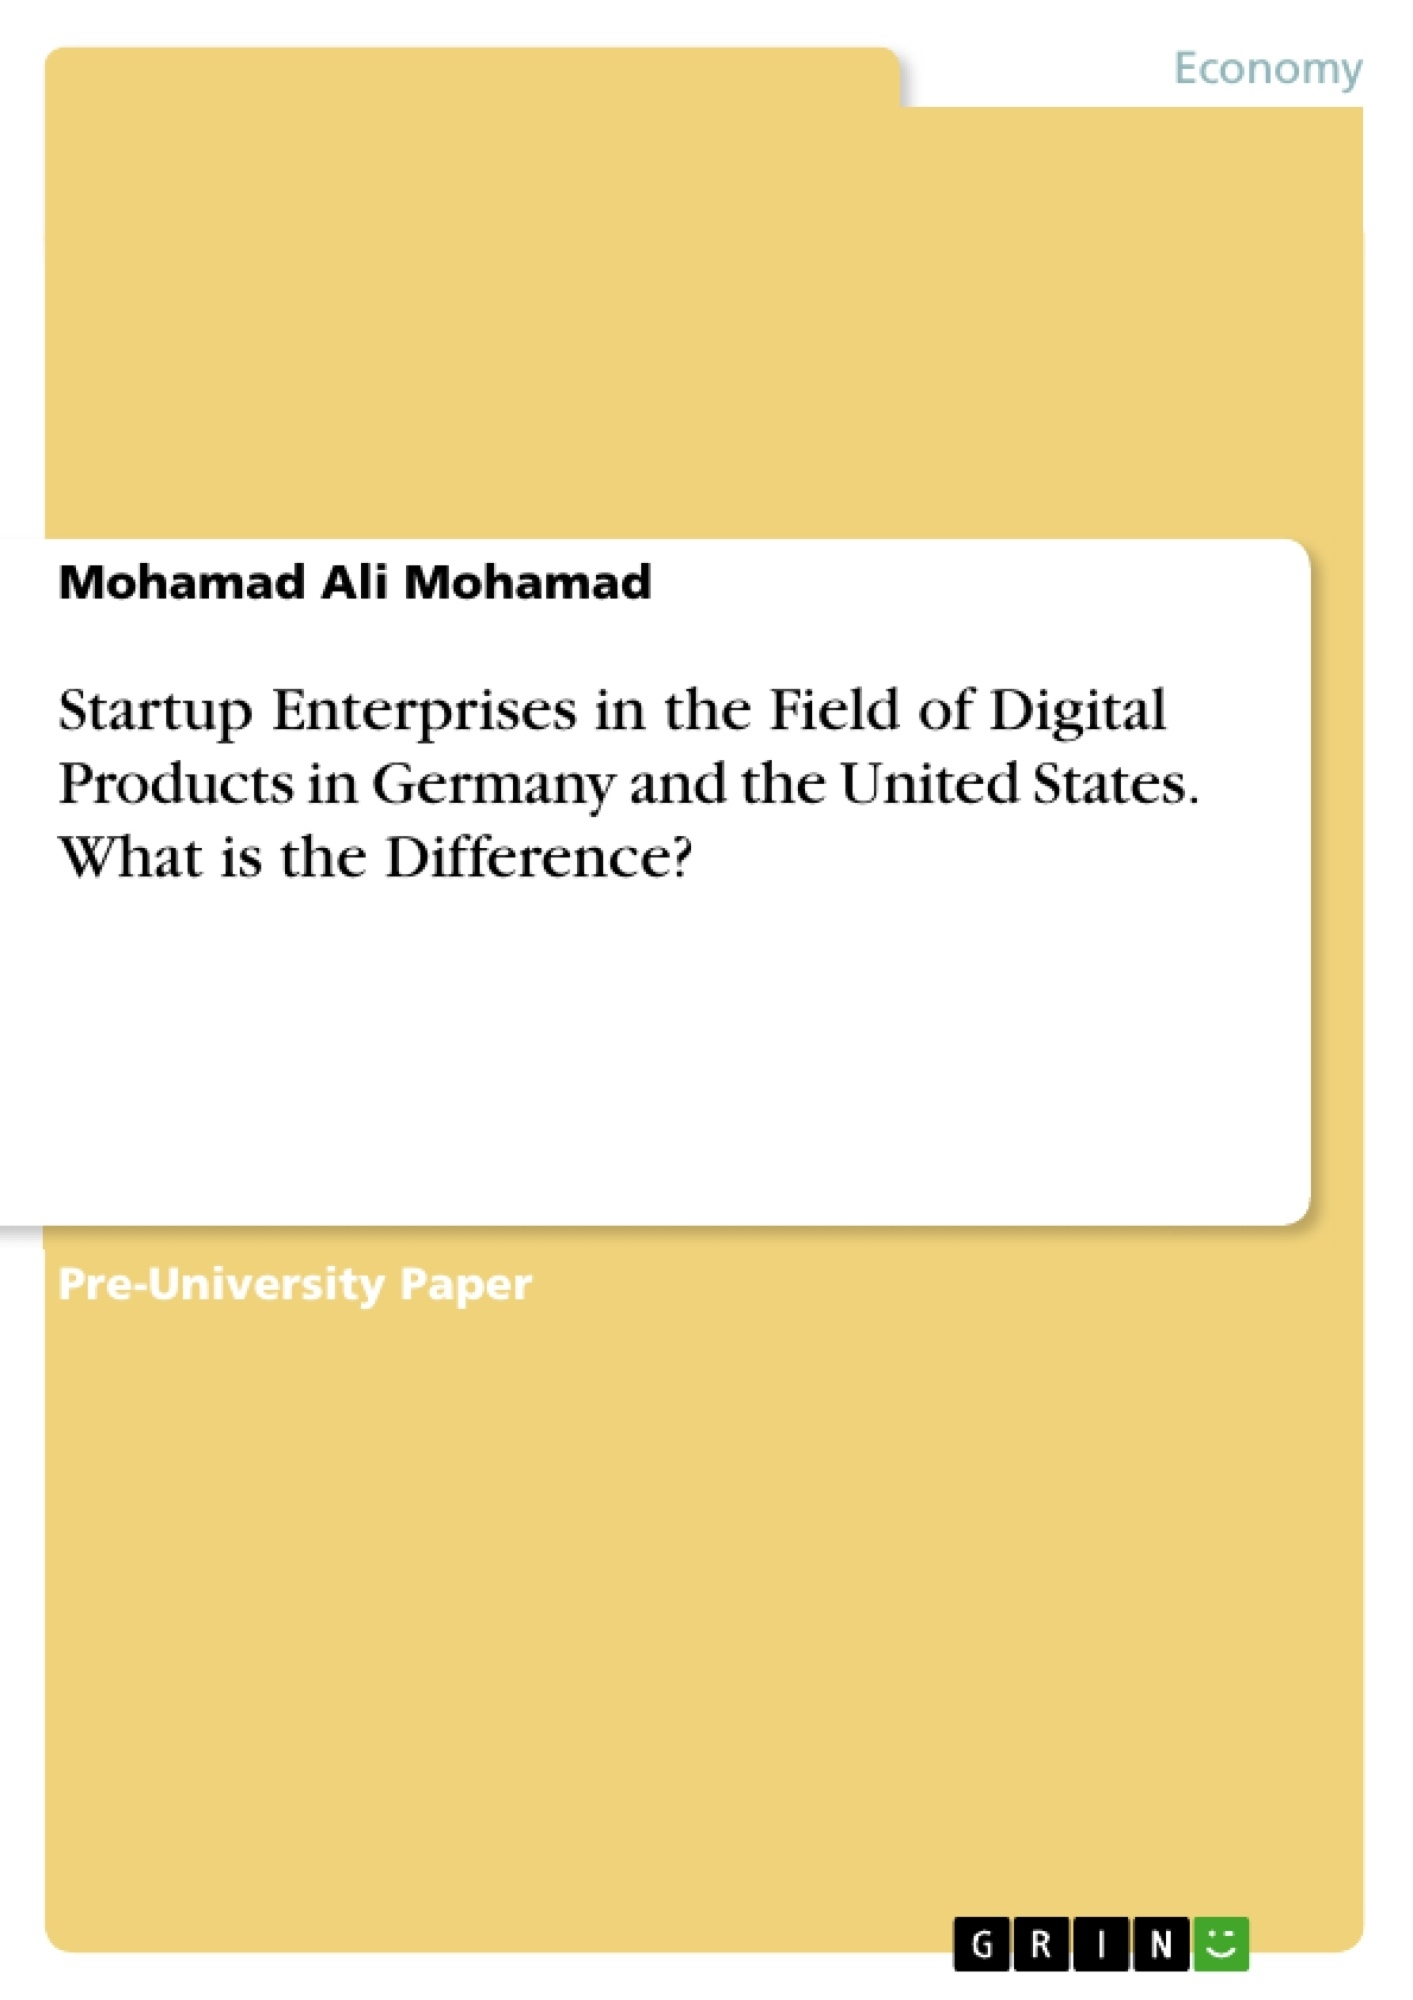 Title: Startup Enterprises in the Field of Digital Products in Germany and the United States. What is the Difference?